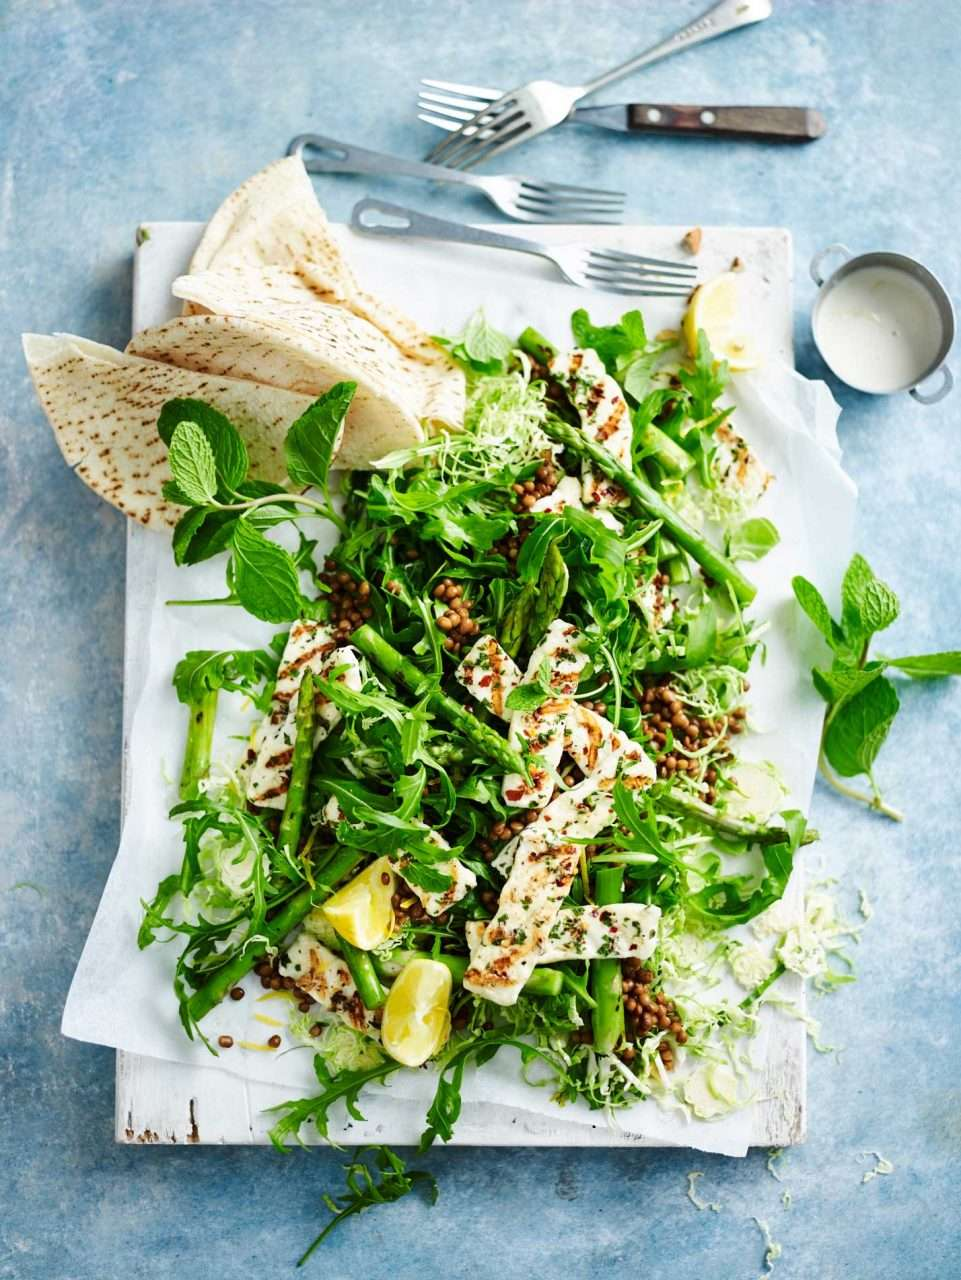 Haloumi-asparagus-&-brussels-sprouts-salad-016